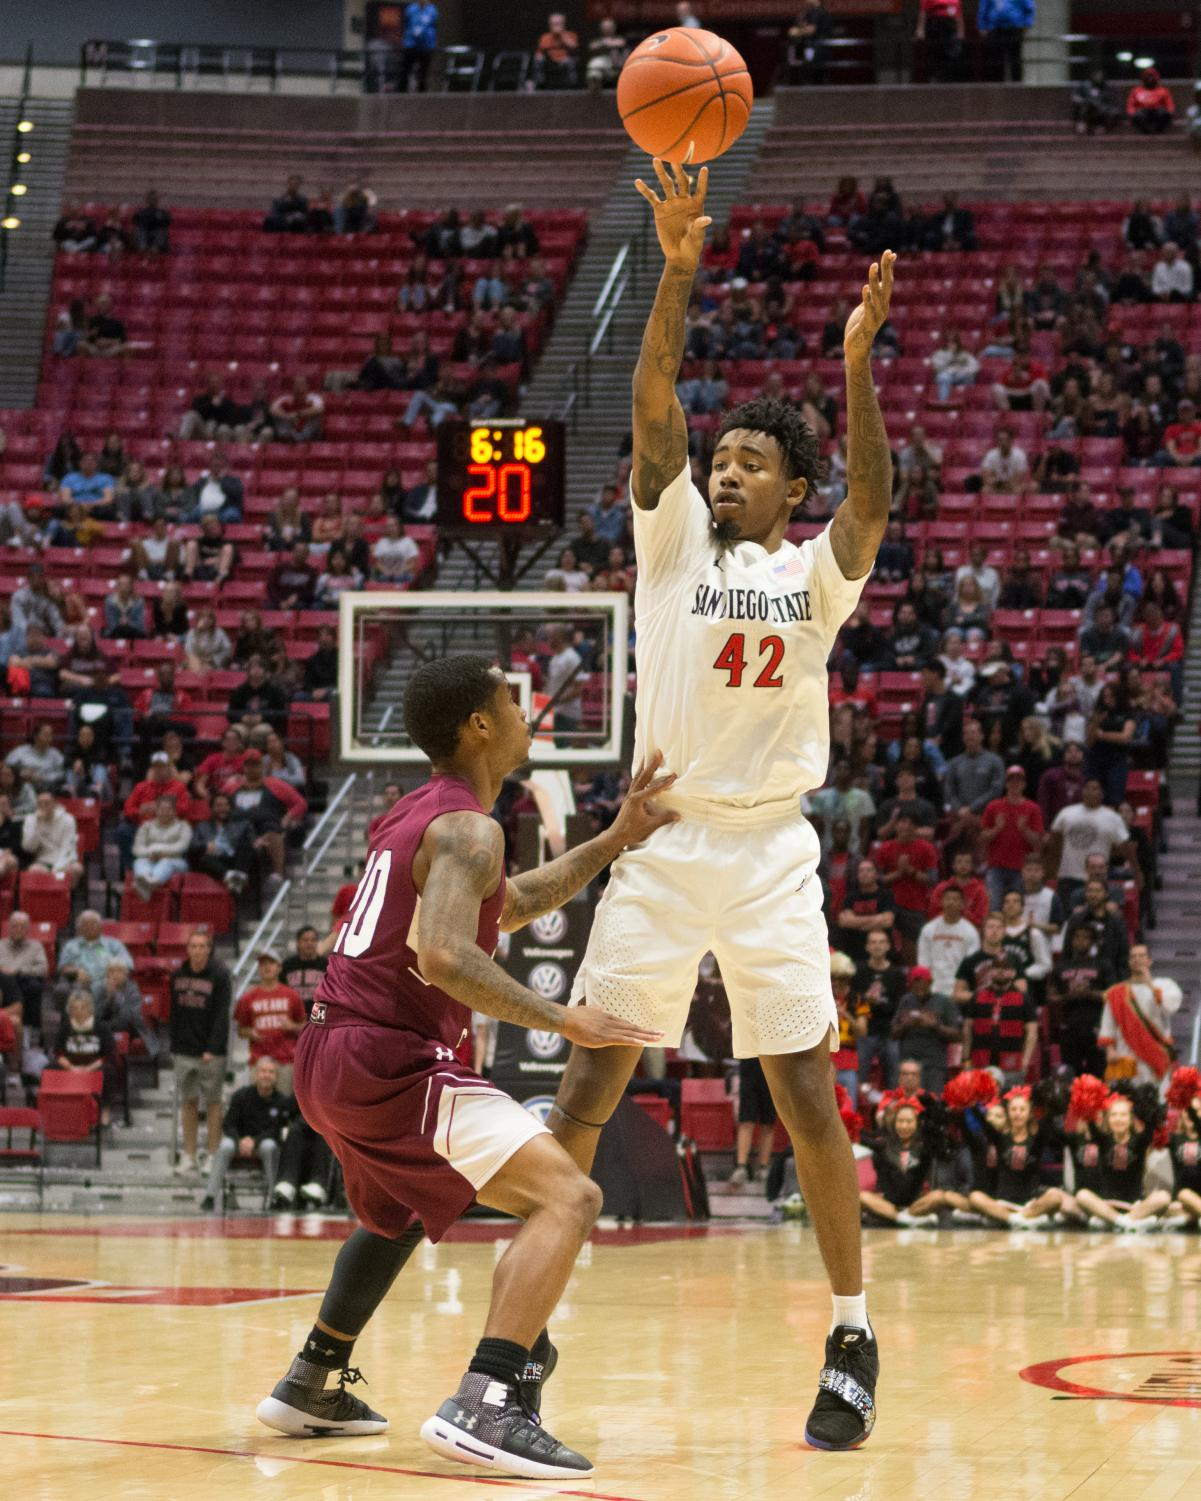 Senior guard Jeremy Hemsley looks to pass the ball during the Aztecs 103-64 over Texas Southern on Nov. 14 at Viejas Arena.